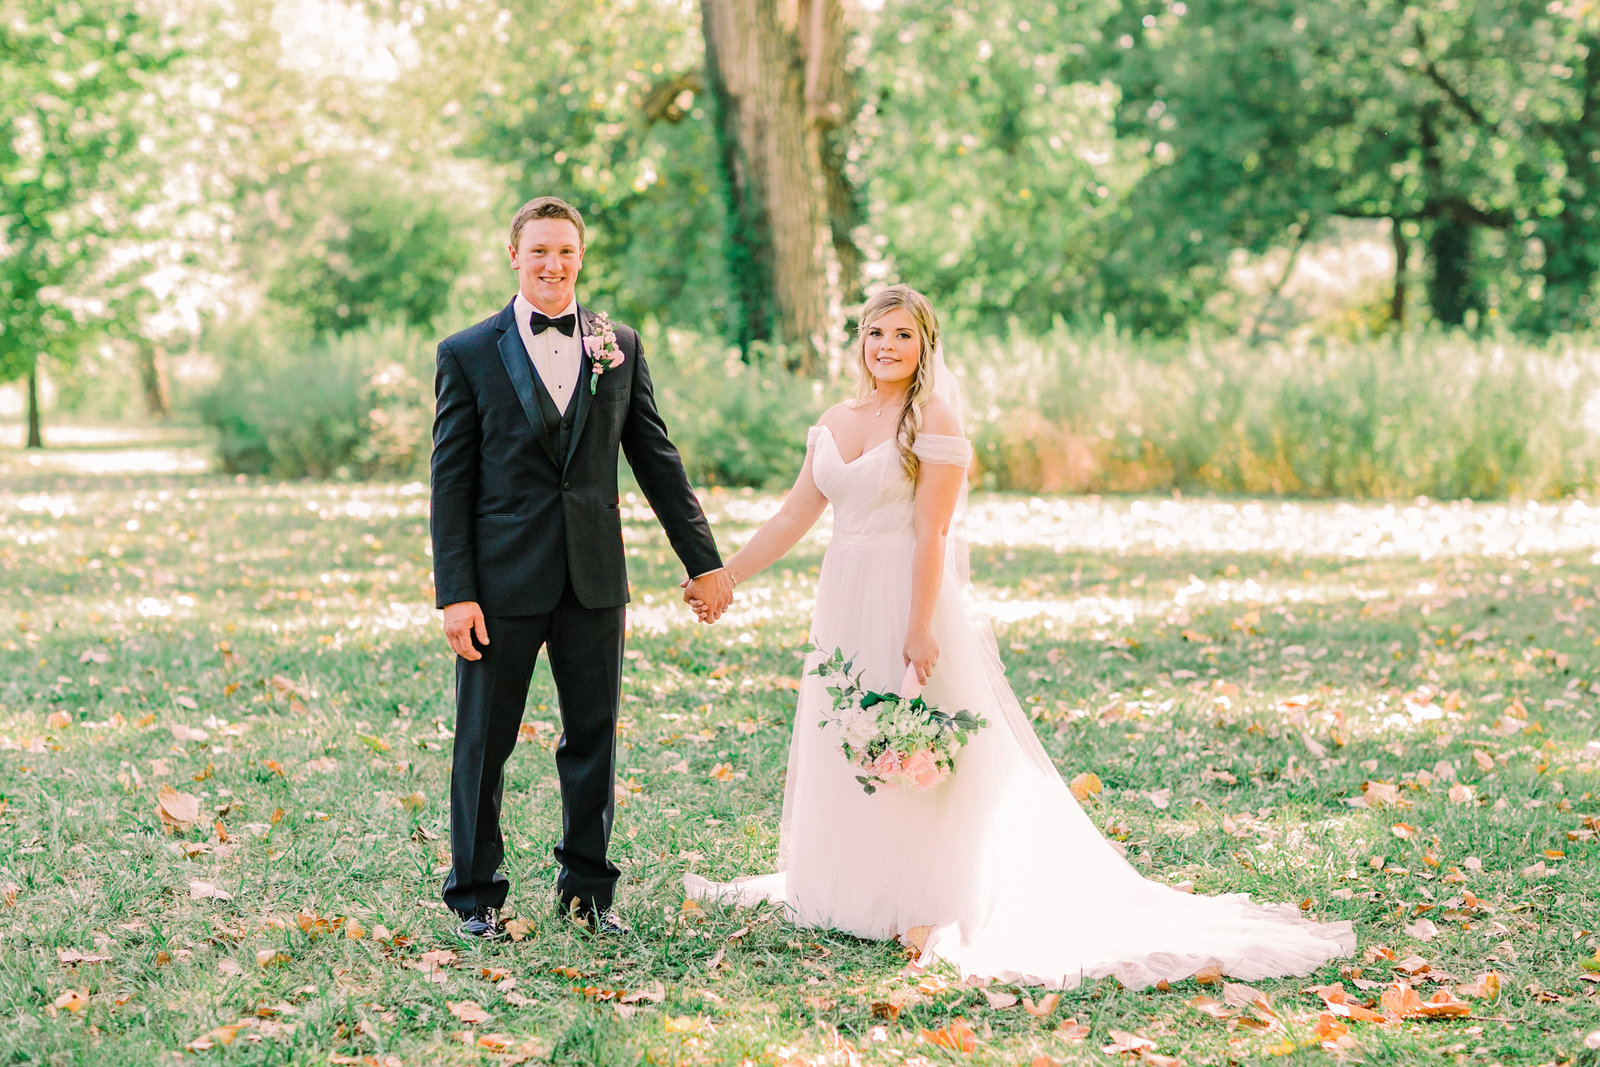 Bride and Groom, Katlyn and Levi, hold hands while standing side by side in a lush green area of Forest Park